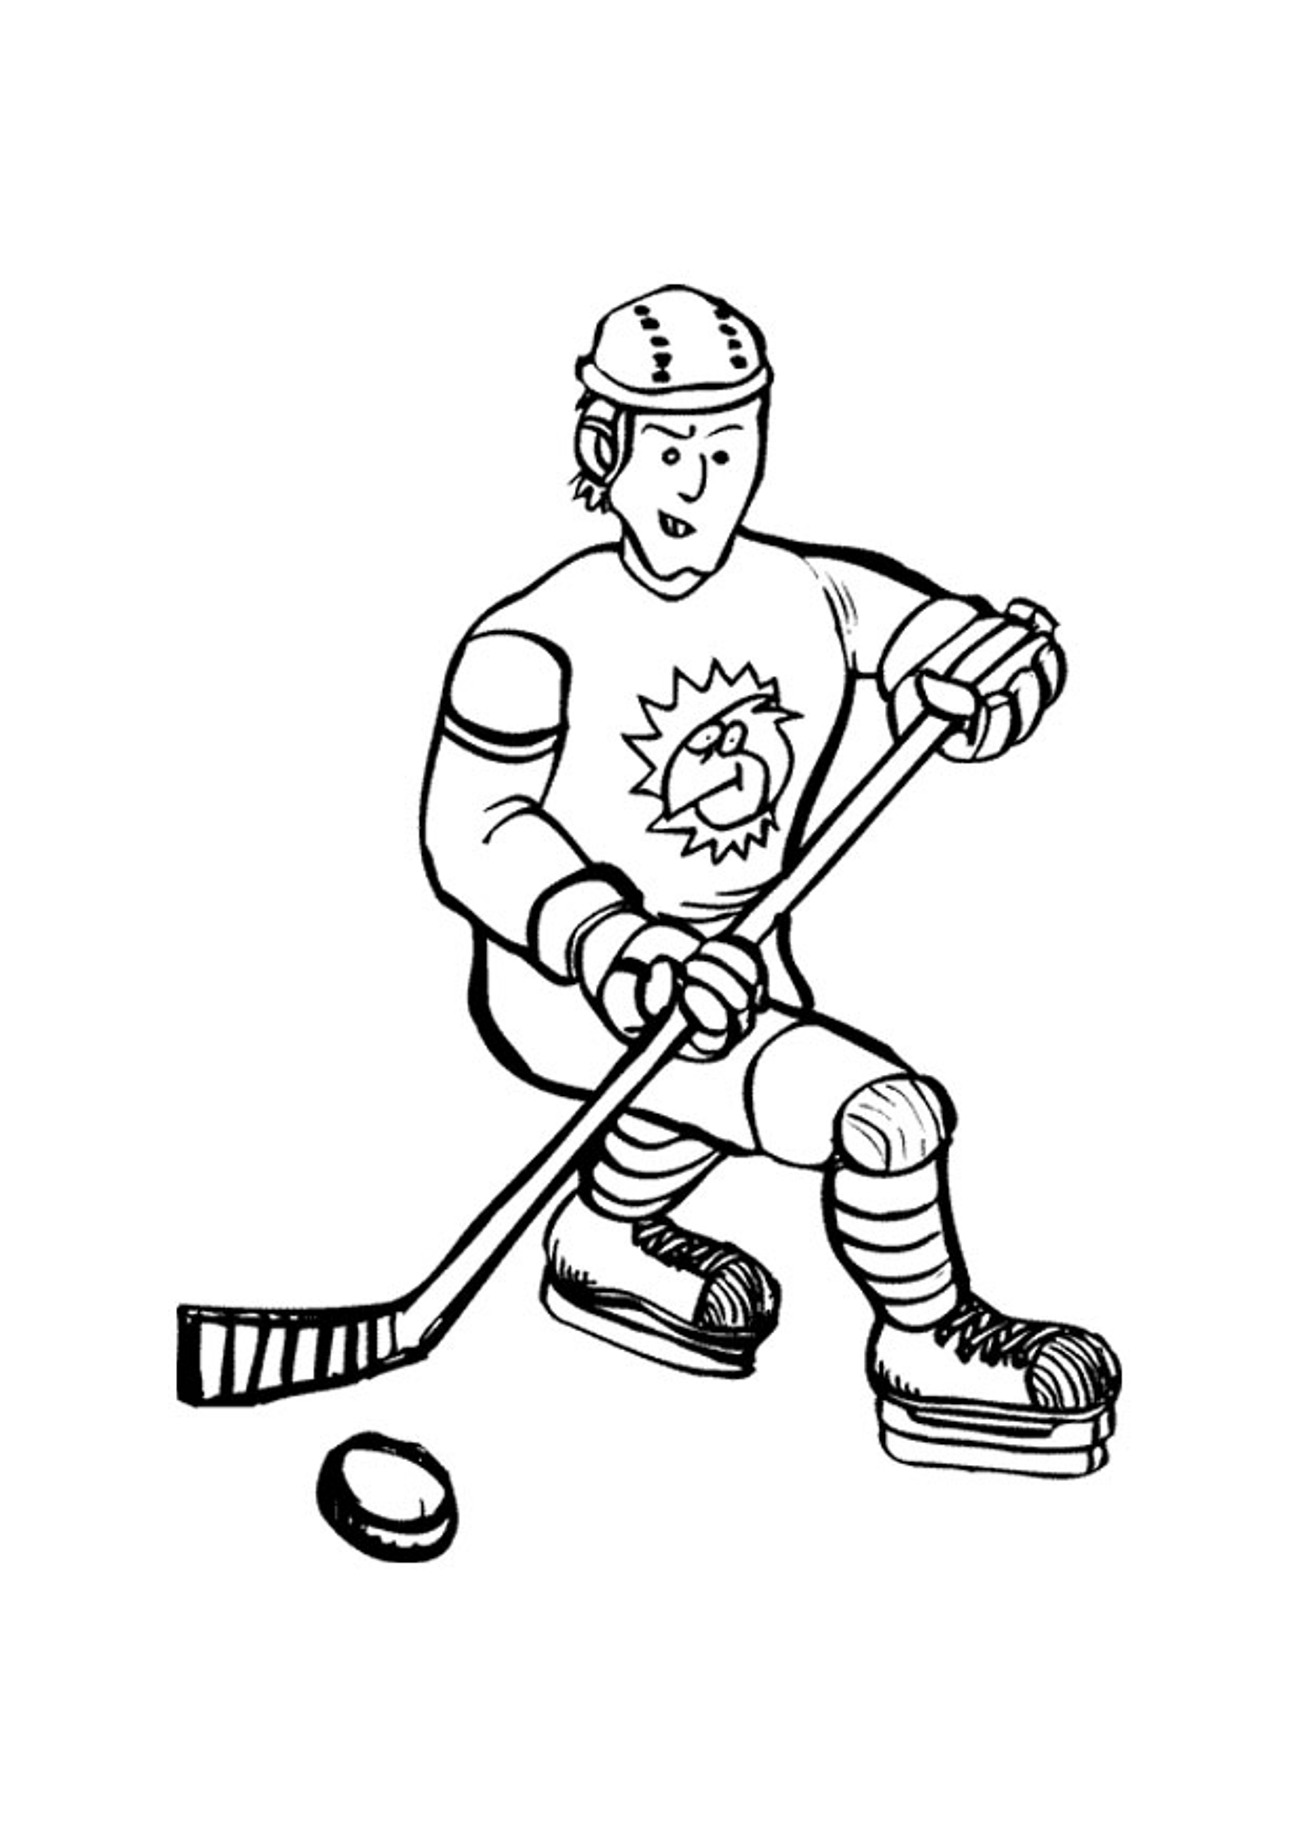 Coloring Pages Printable Hockey Coloring Pages printable hockey coloring pages me sheets